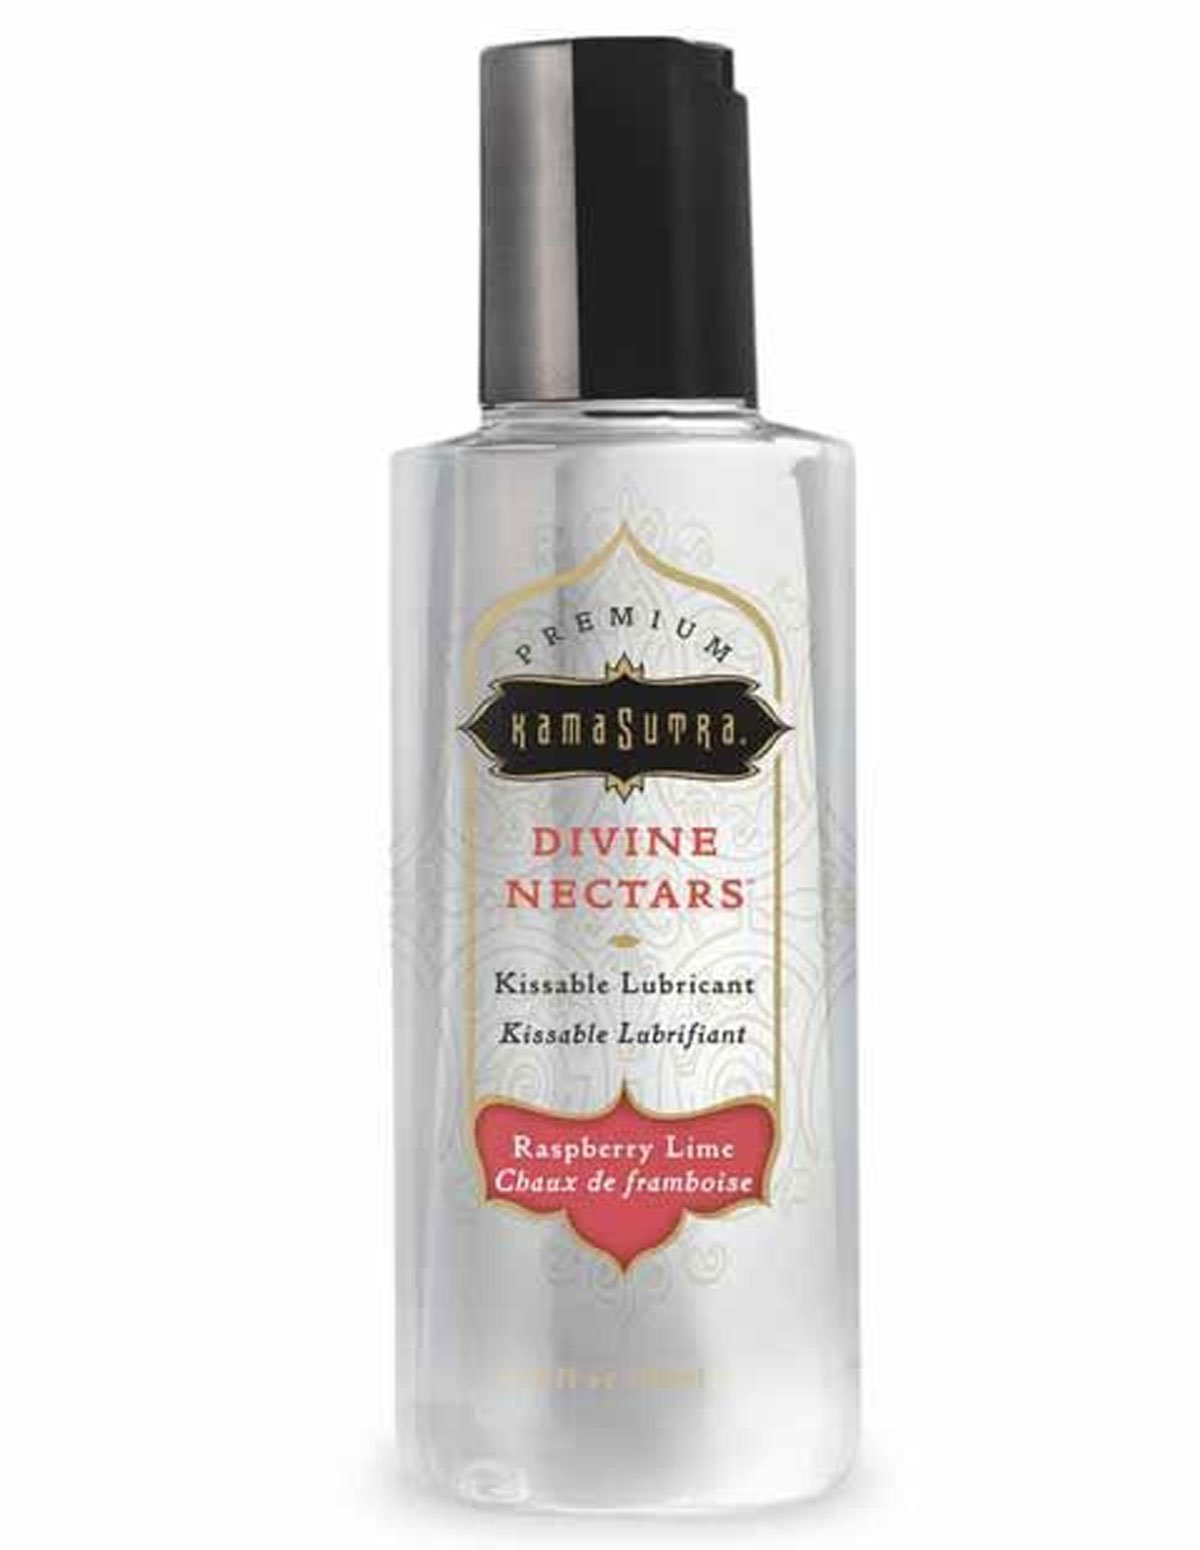 Divine Nectars Raspberry Lime Lubricant